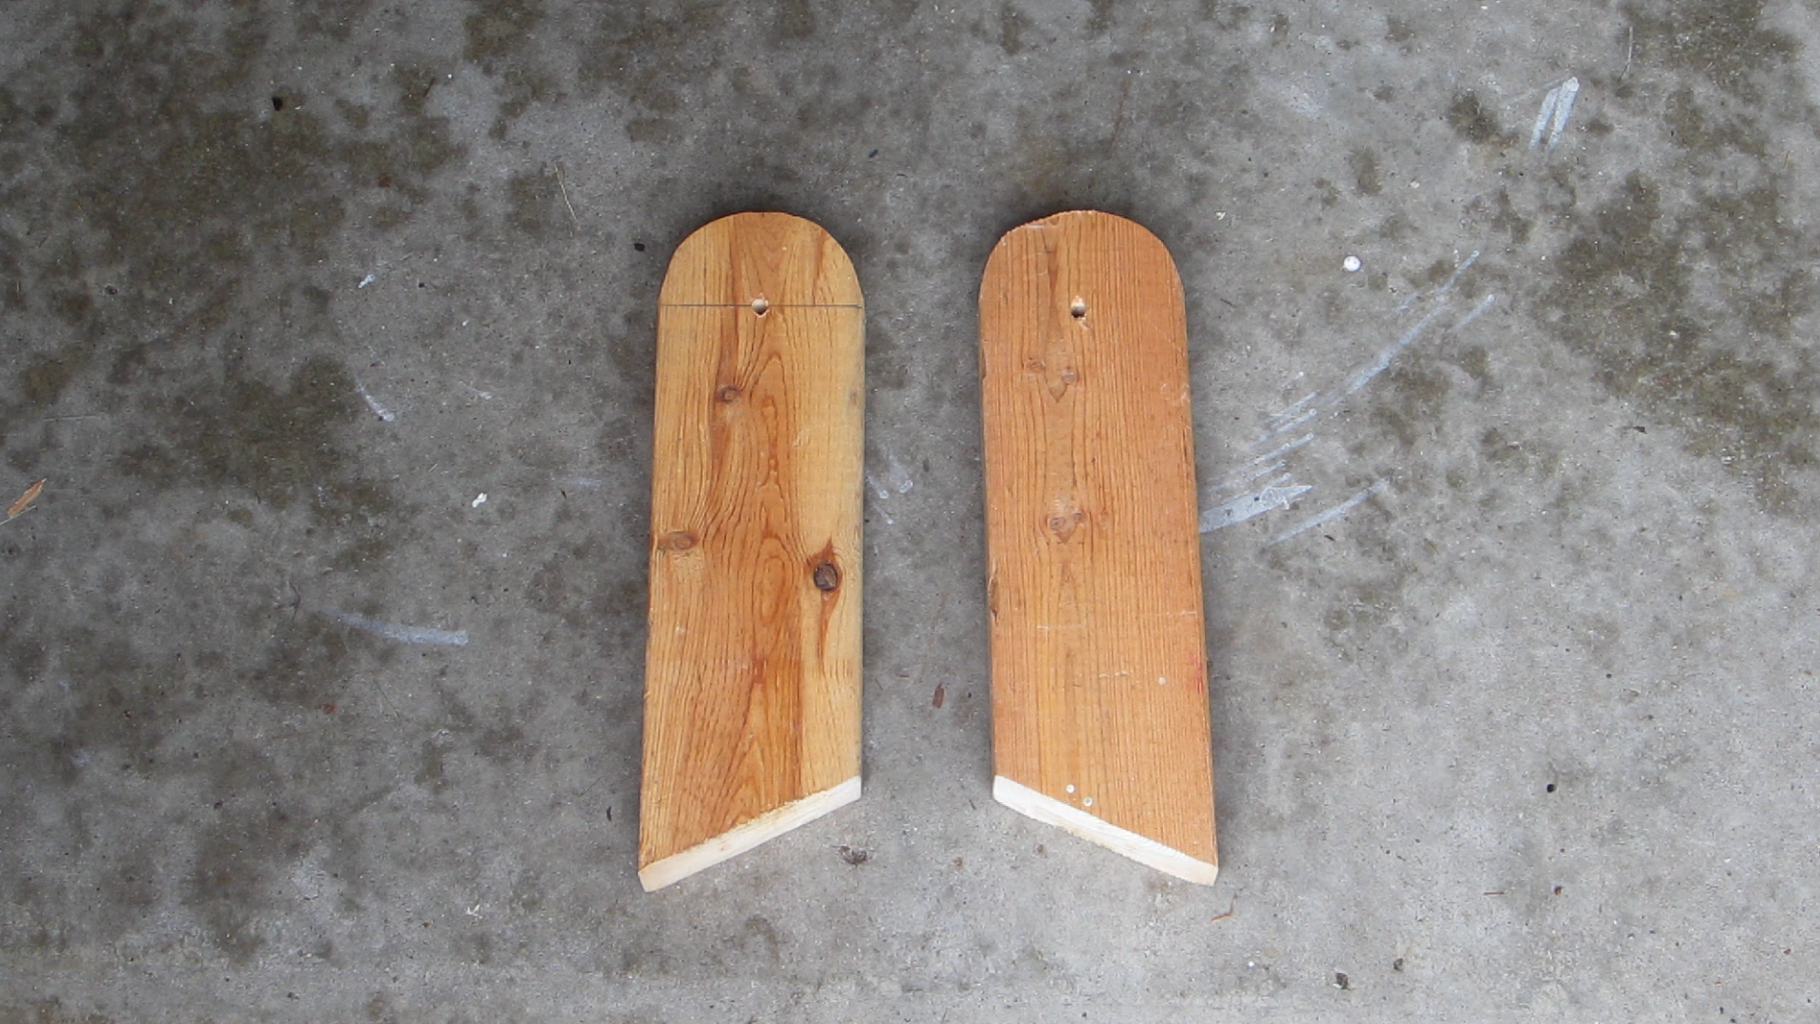 Cut Out the Feet for the Board